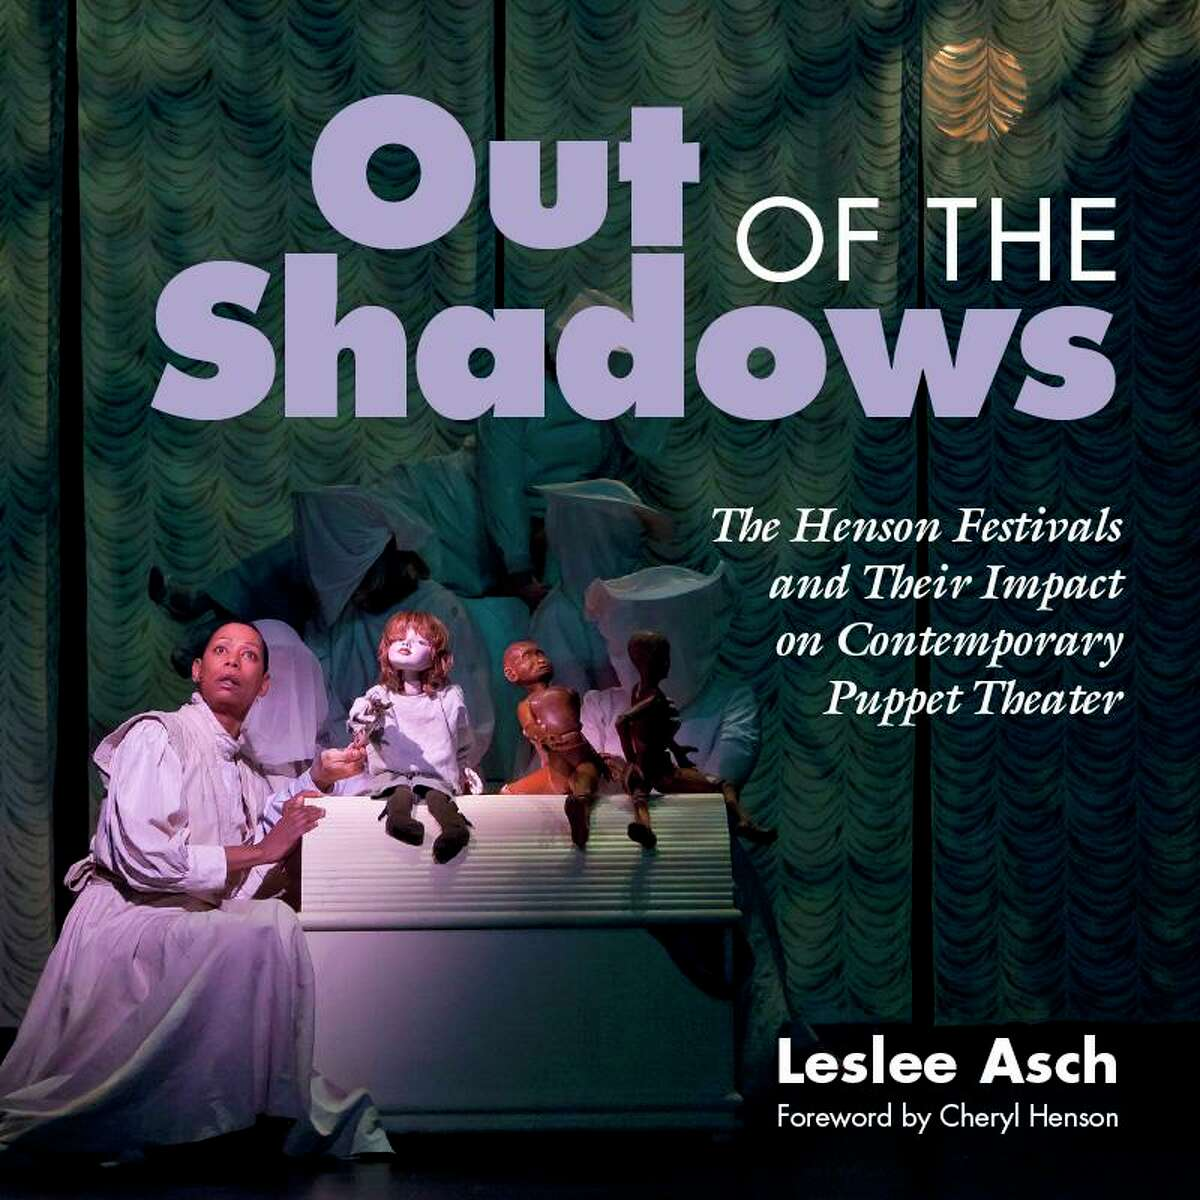 """""""Out of the Shadows: The Henson Festivals and Their Impact on Contemporary Puppet Theater"""" by Leslee Asch explores Jim Henson's impact on theater."""